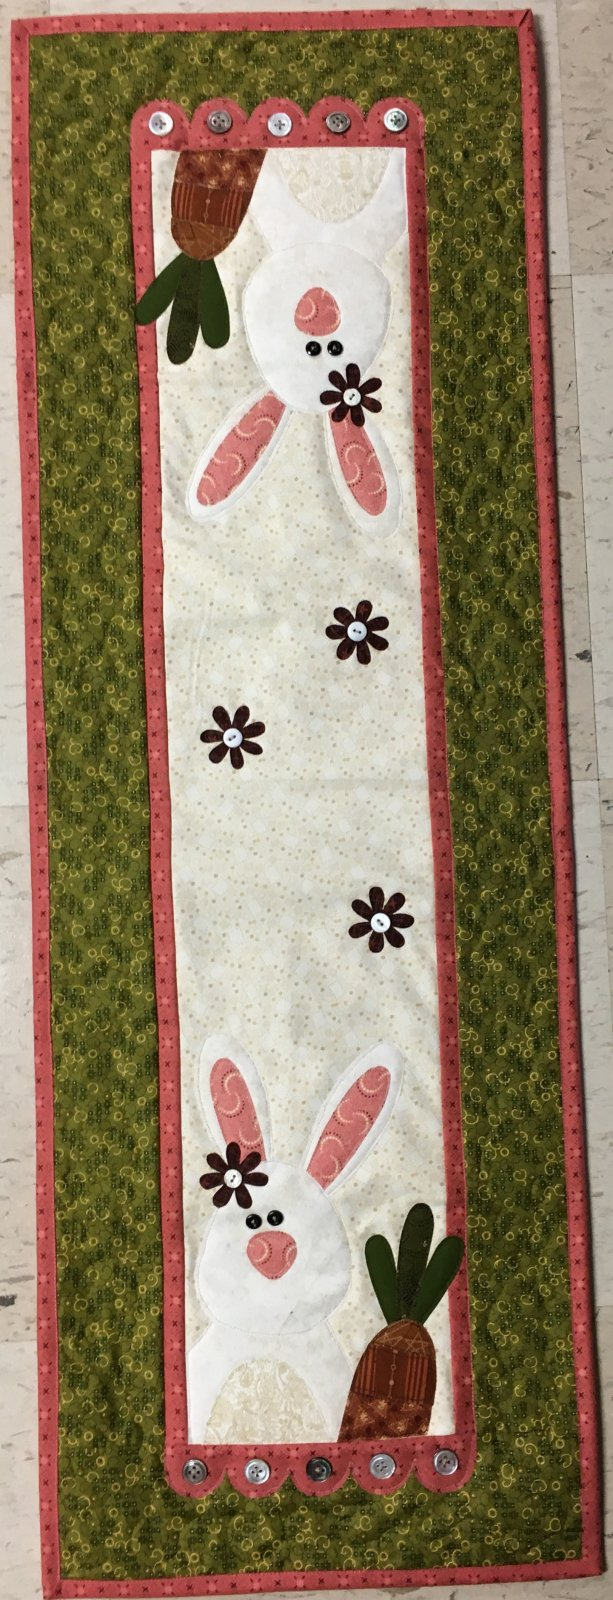 April Carrot Tops Runner Kit 12 x 36 Includes Buttons & Backing